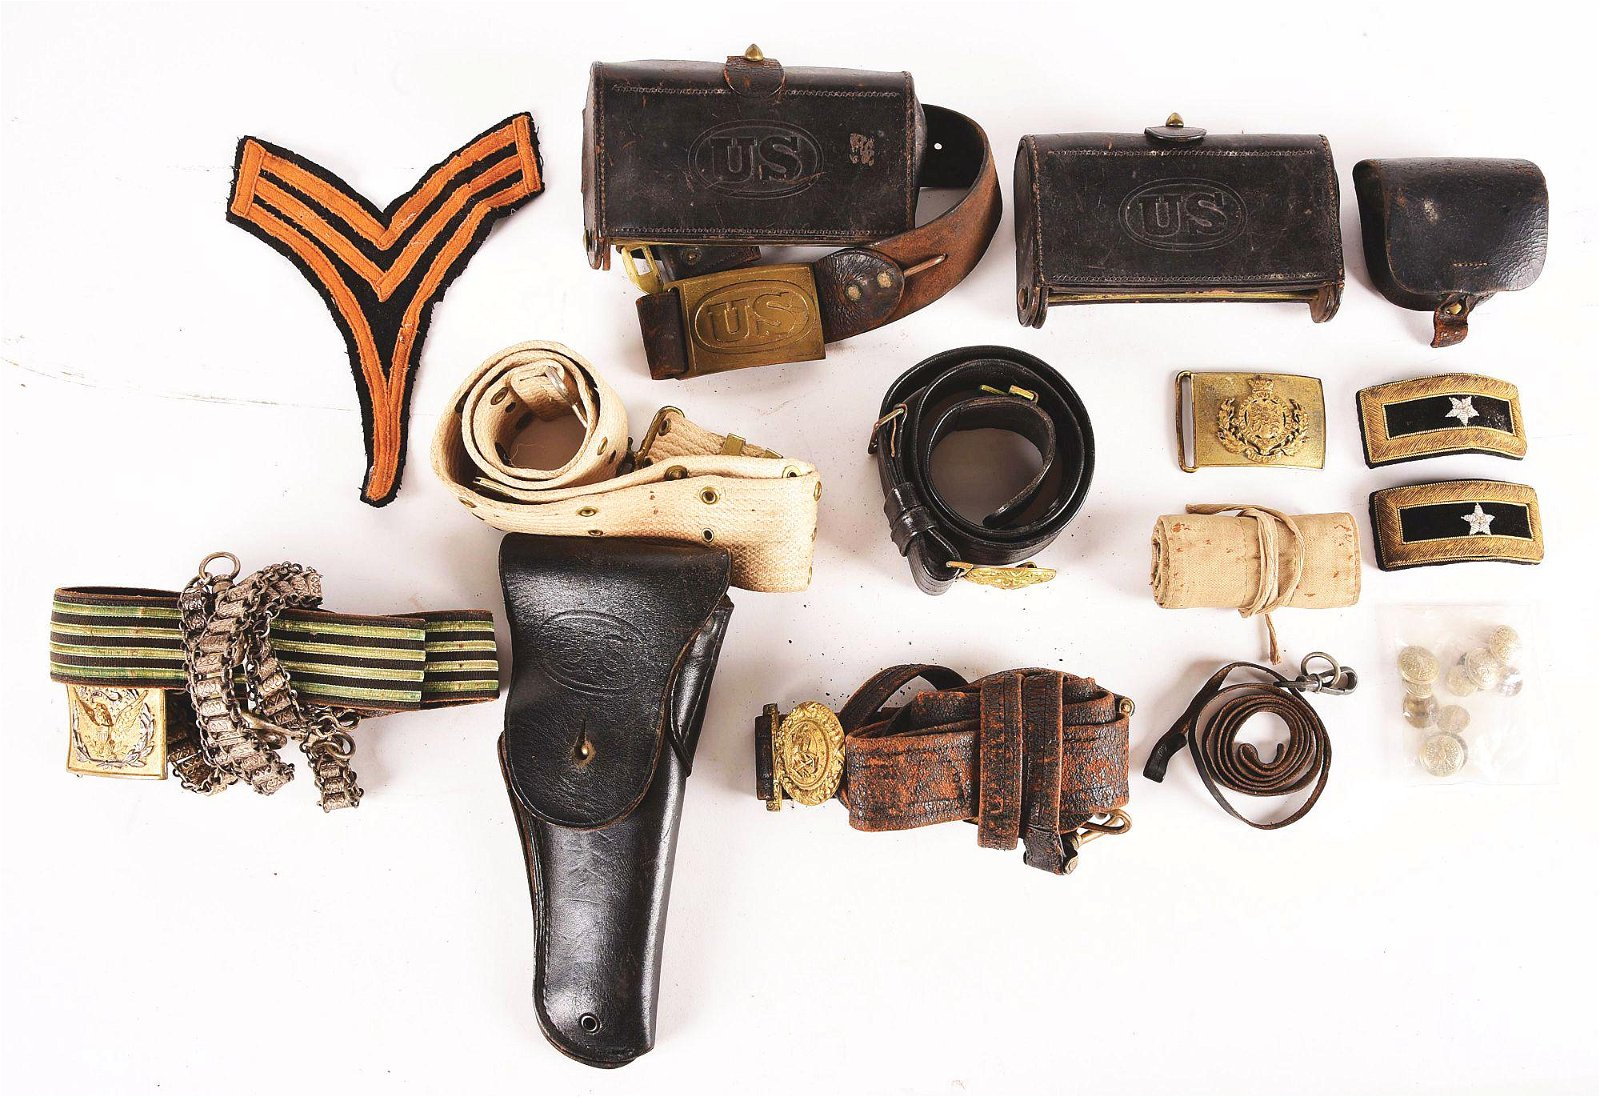 LOT OF MISCELLANEOUS AMERICAN MILITARY BELTS AND